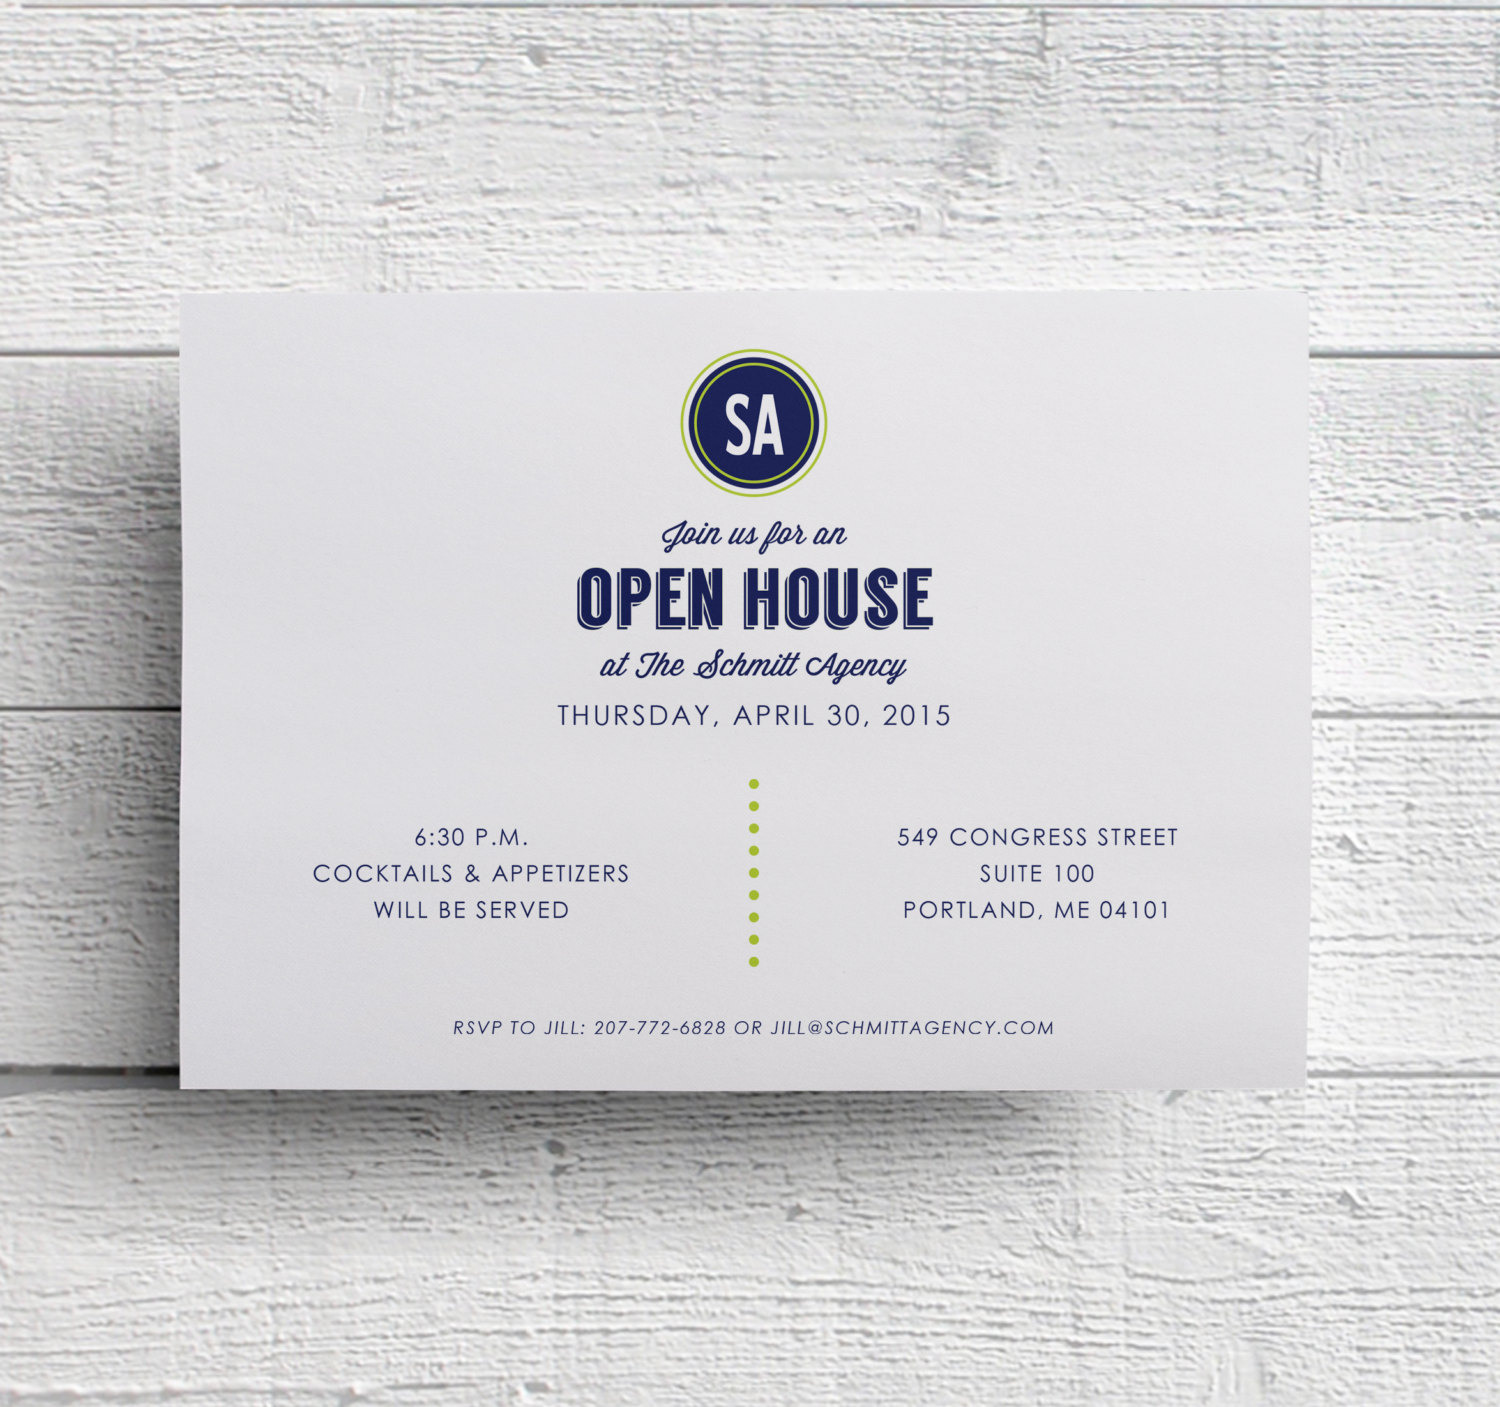 10 Business Invitation Card Designs and Examples PSD AI